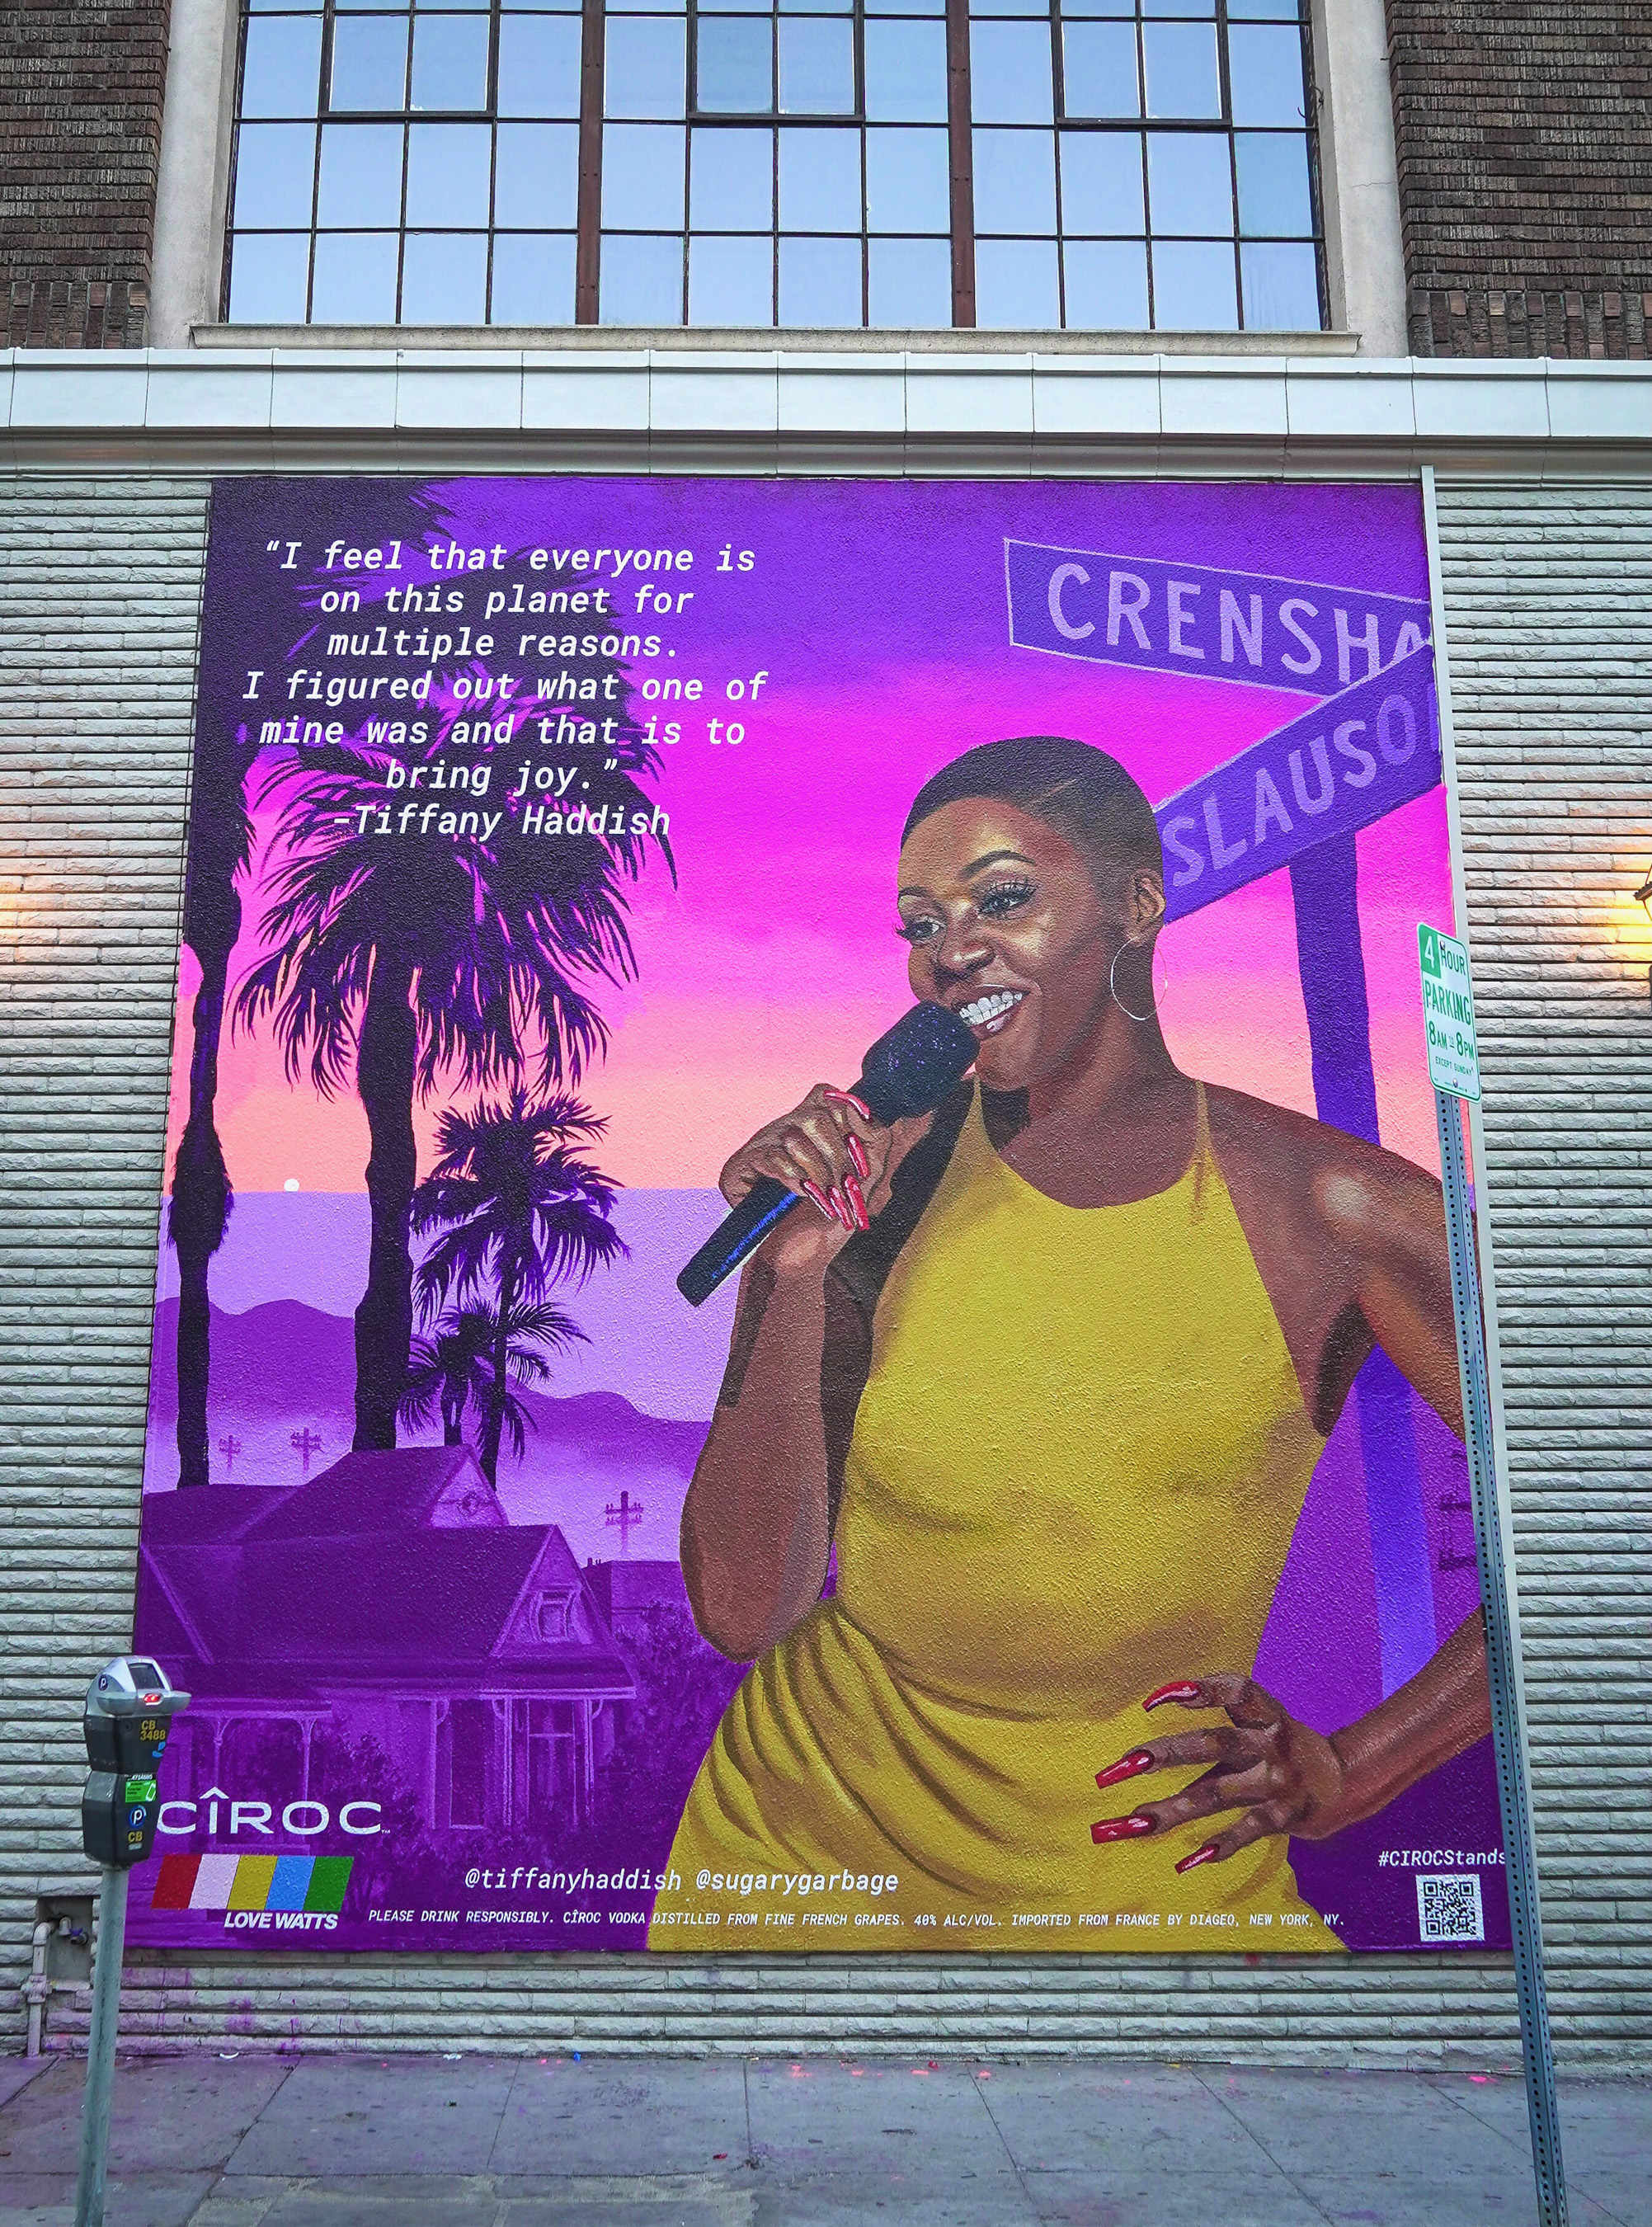 #CIROCStands Mural Of Tiffany Haddish Painted By Artist Kezia Harrell In Los Angeles To Celebrate Black Excellence